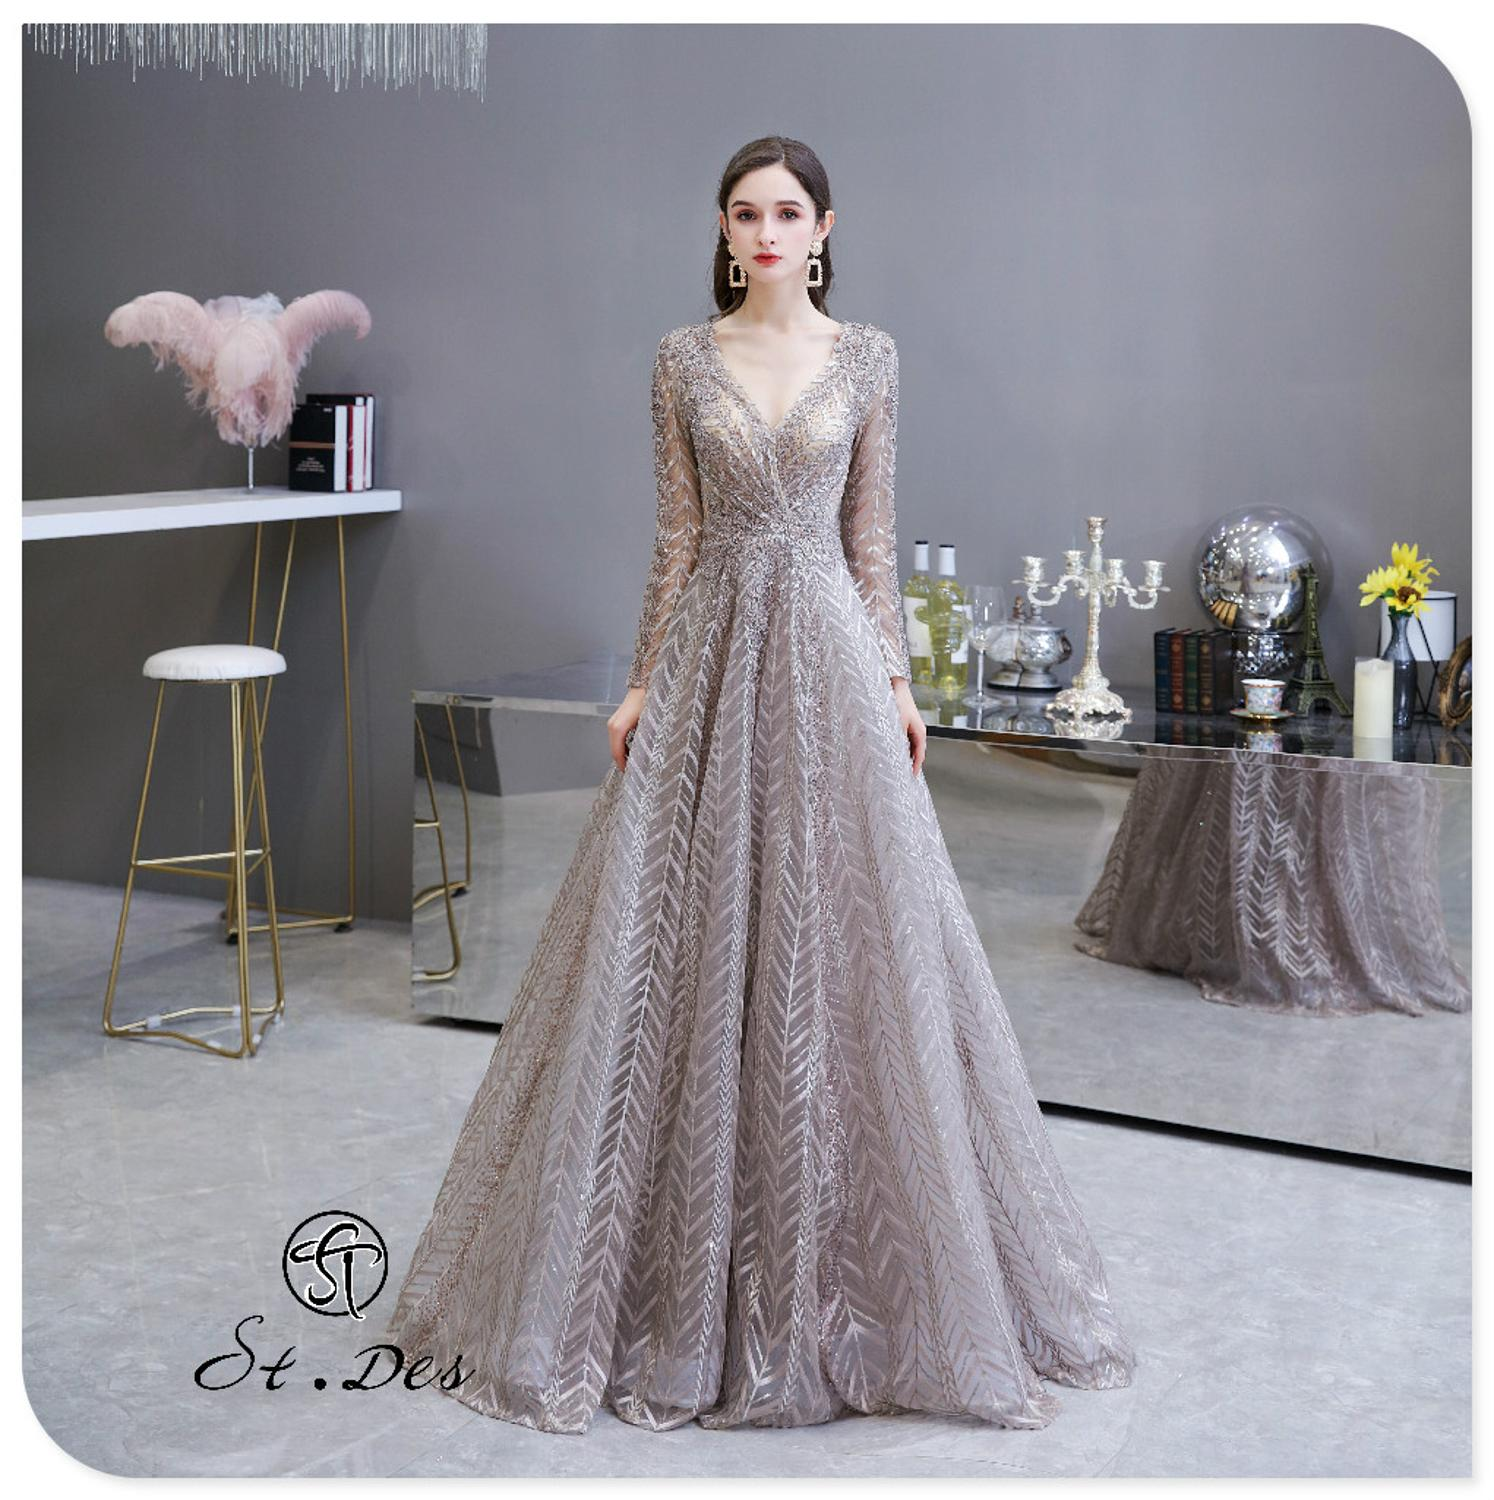 S.T.DES Evening Dress 2020 New Arrival V-neck A-line Lace Long Sleeve Floor Length Party Dress Dinner Gowns